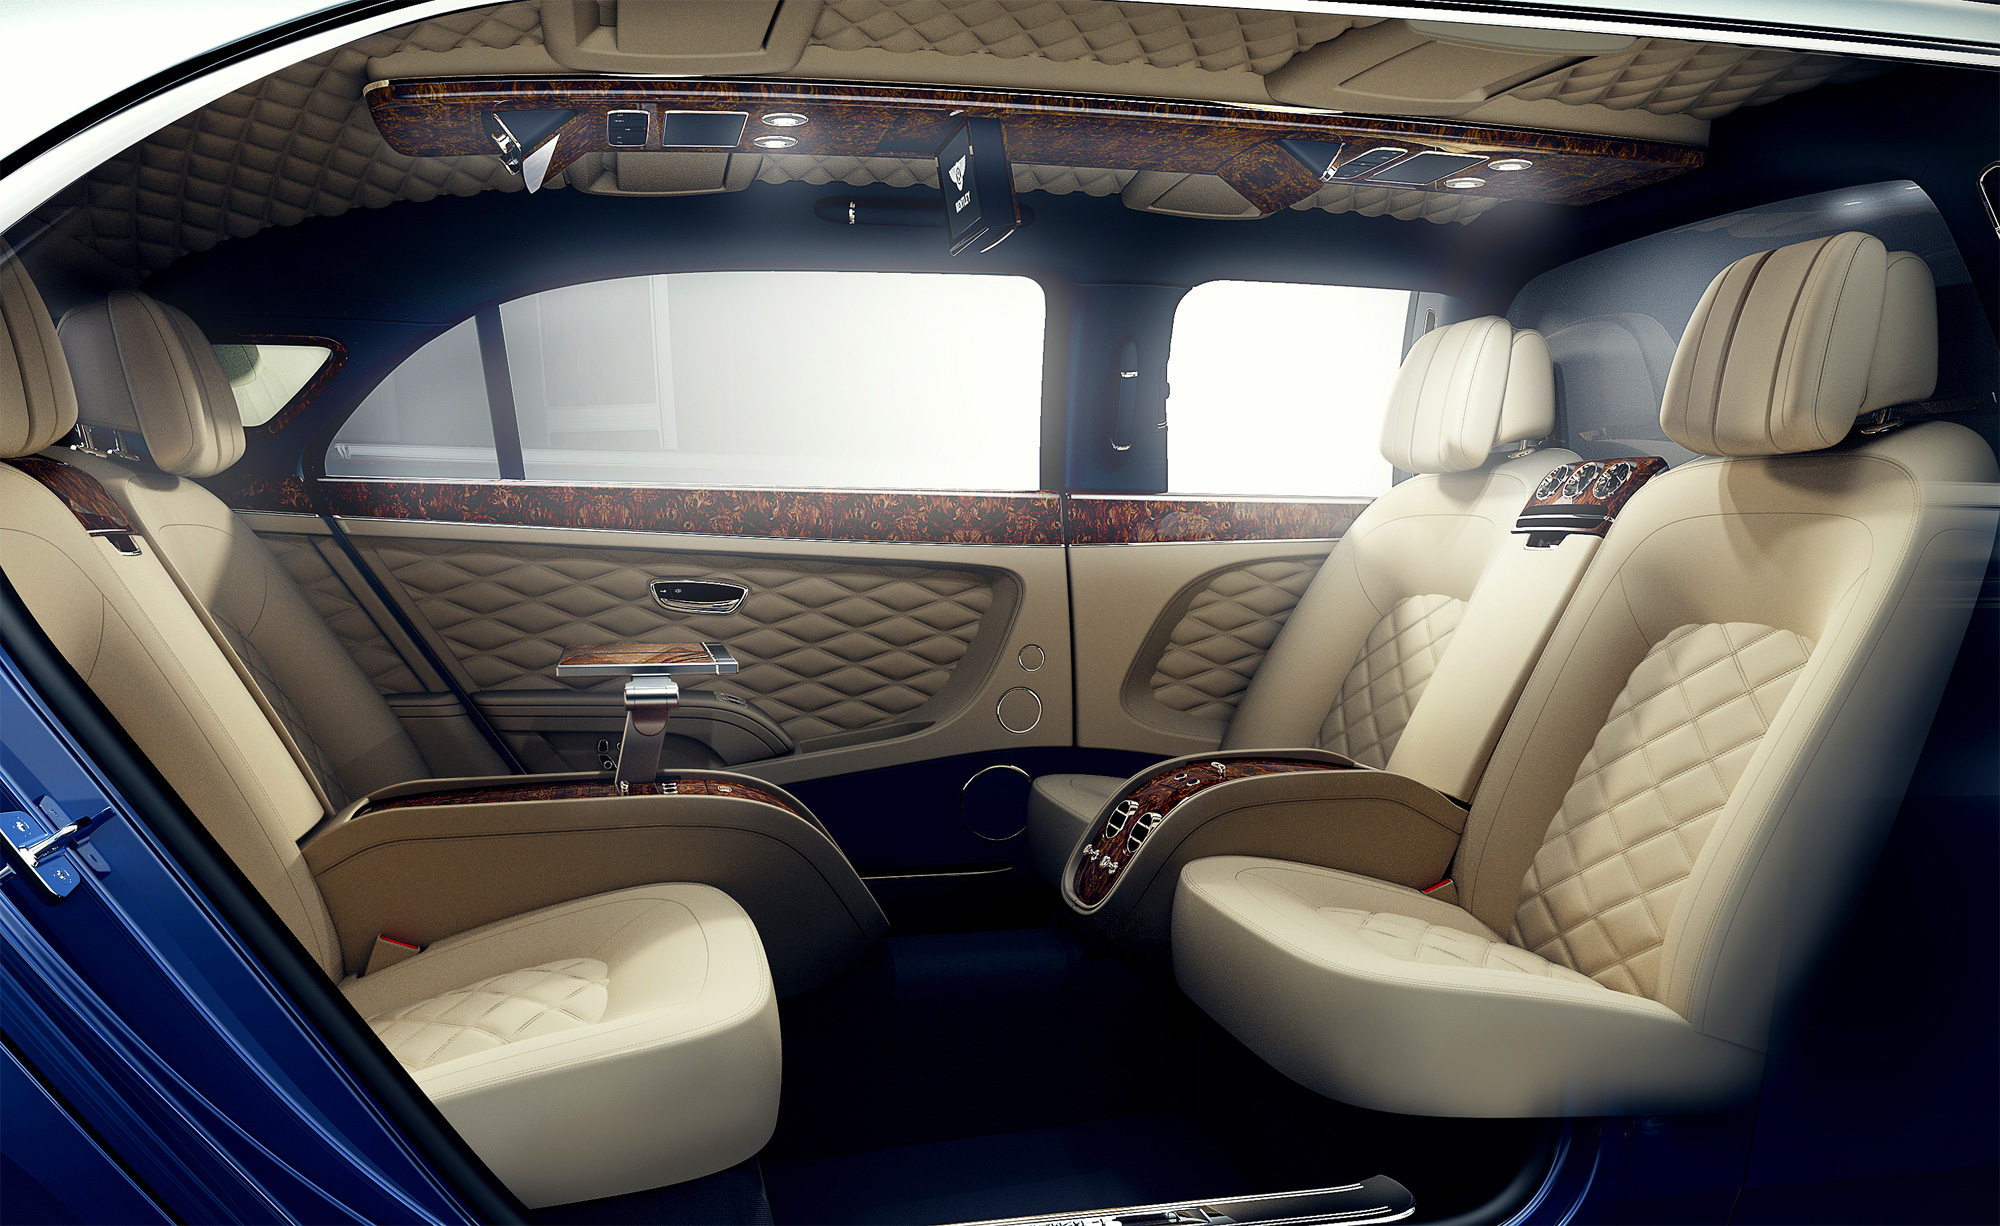 grand image original free px limousine mulsanne cars x mulliner download bentley wallpaper